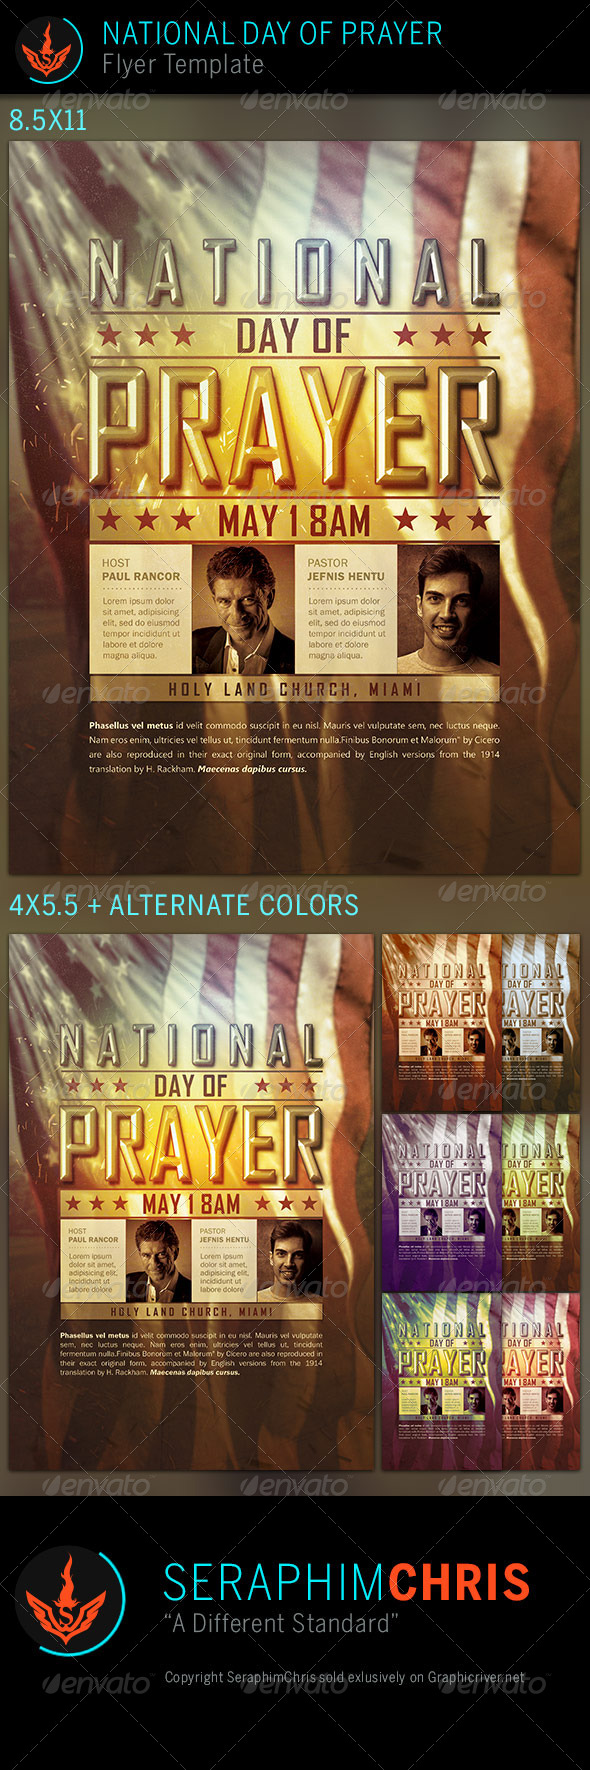 National Day of Prayer: Church Flyer Template - Church Flyers